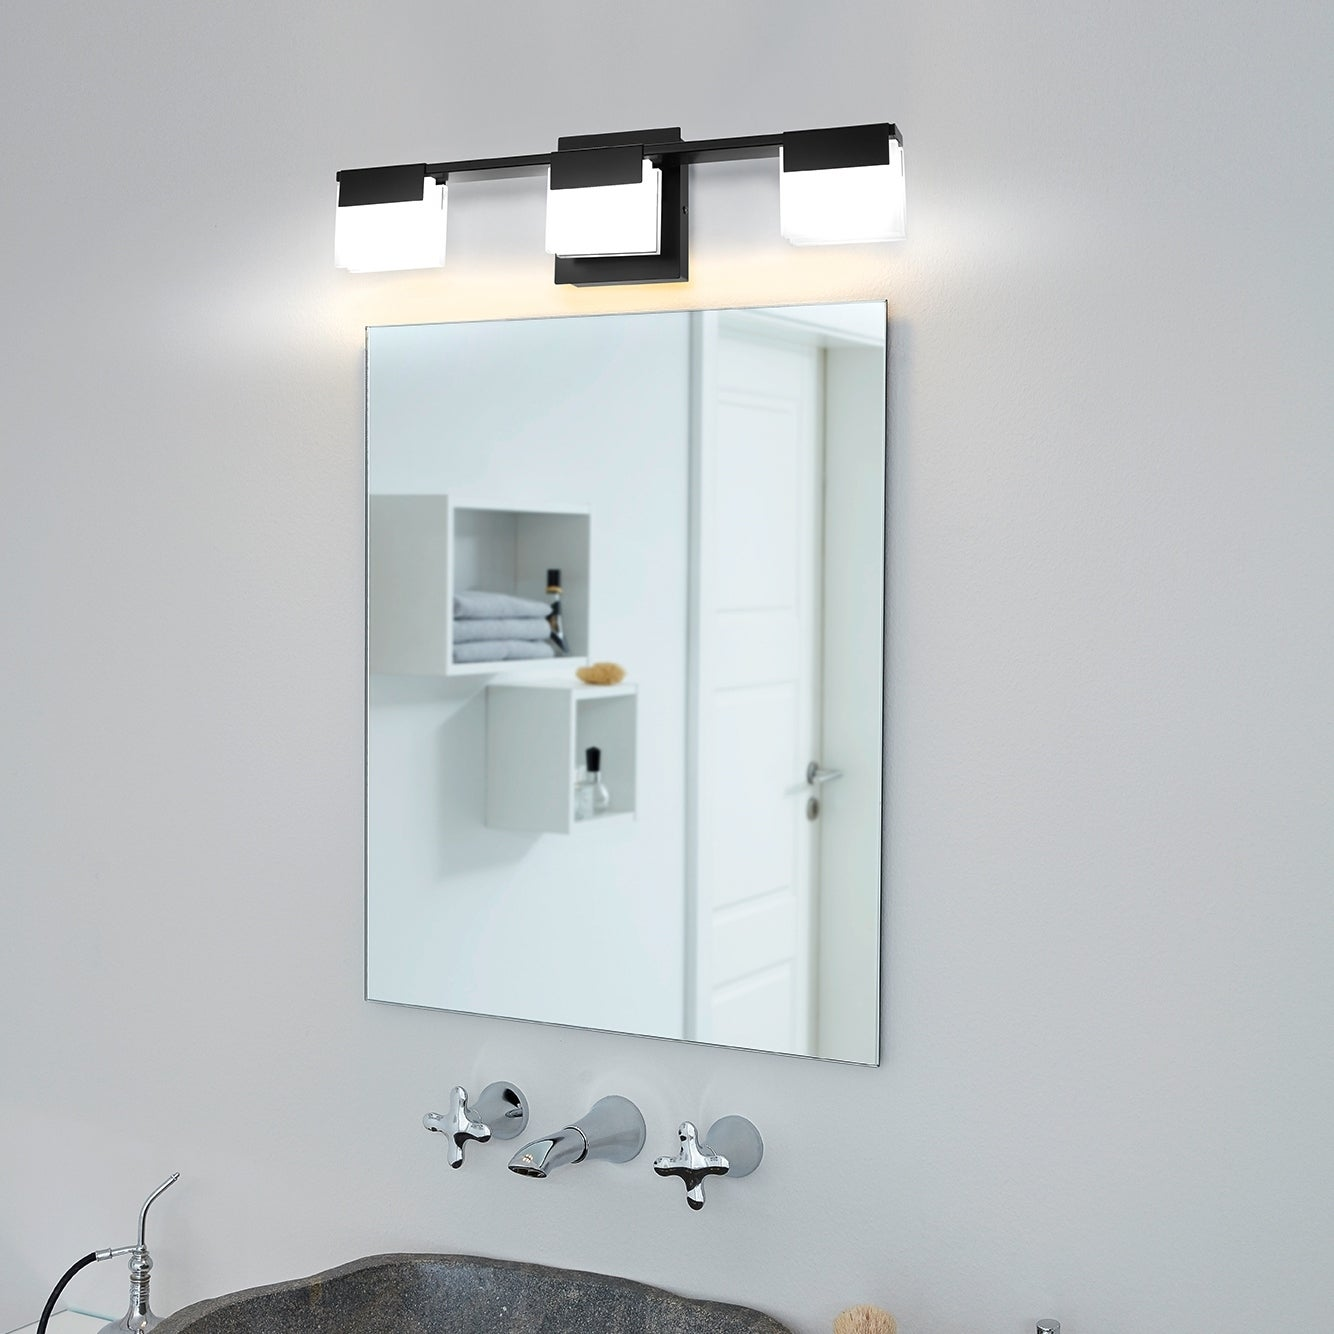 Image of: Shop Black Friday Deals On Eglo Vente 3 Light Mate Black Led Bath Vanity Light With Square Frosted Glass Overstock 30391763